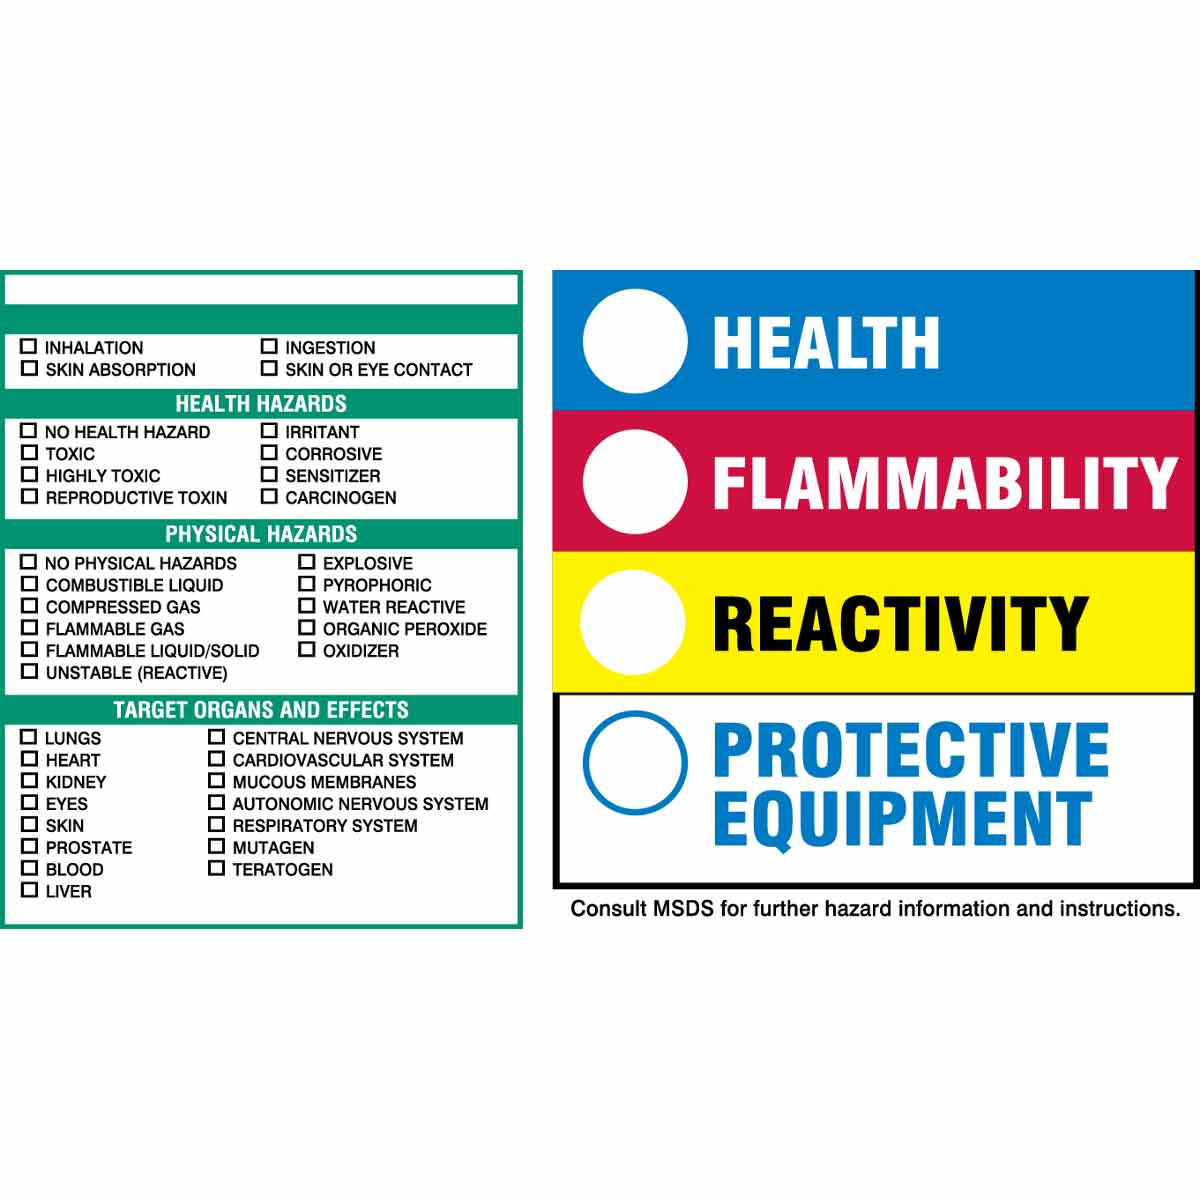 It is a graphic of Hilaire Health Flammability Reactivity Labels